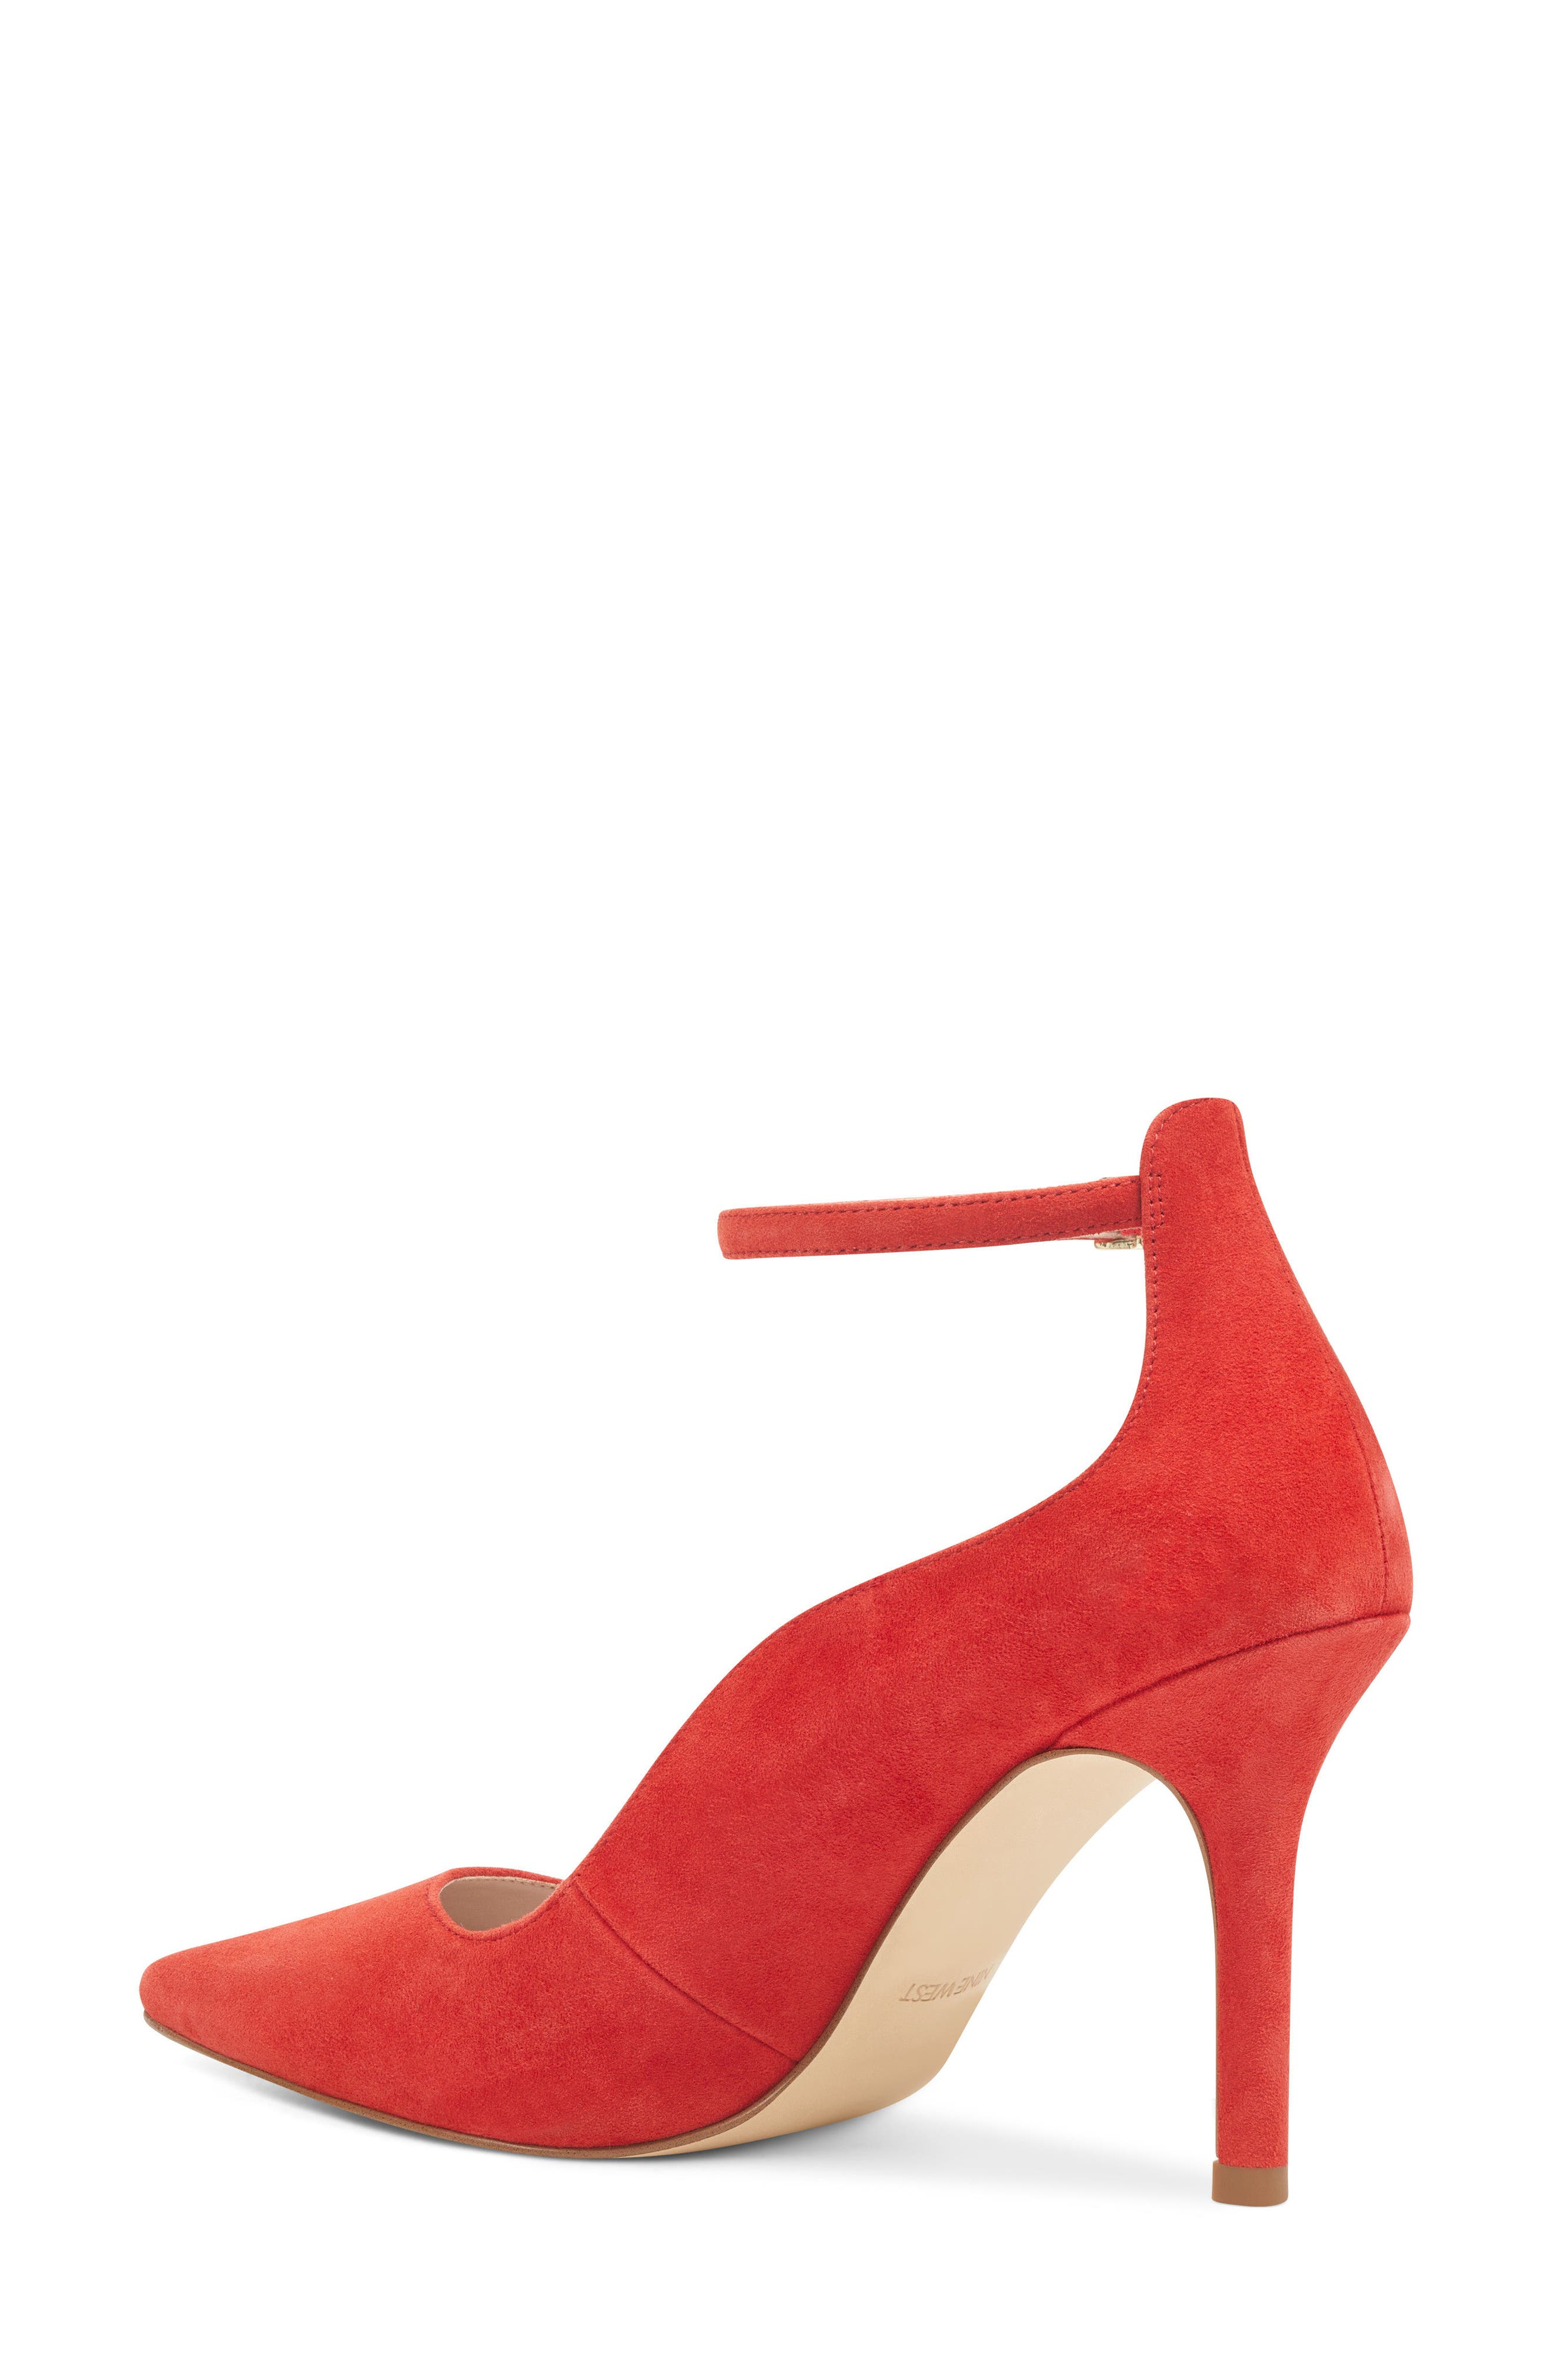 Marquisha Scalloped Ankle Strap Pump,                             Alternate thumbnail 2, color,                             Red Suede